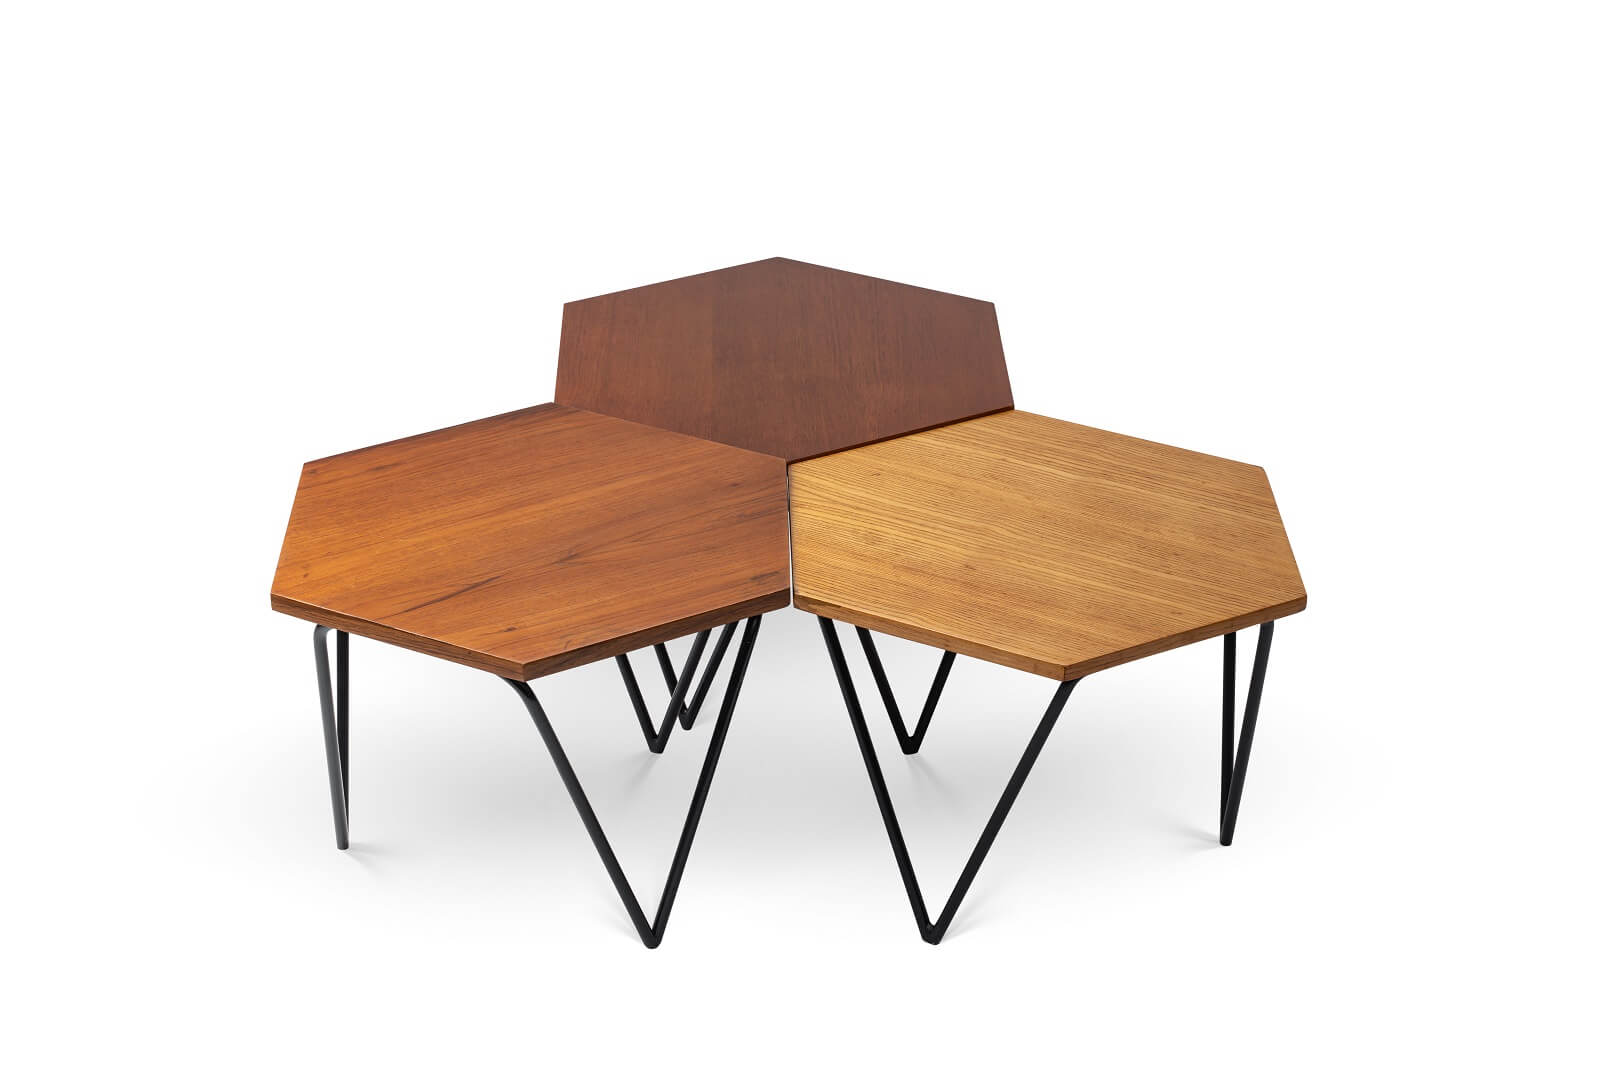 Coffee table by Gio Ponti for sale